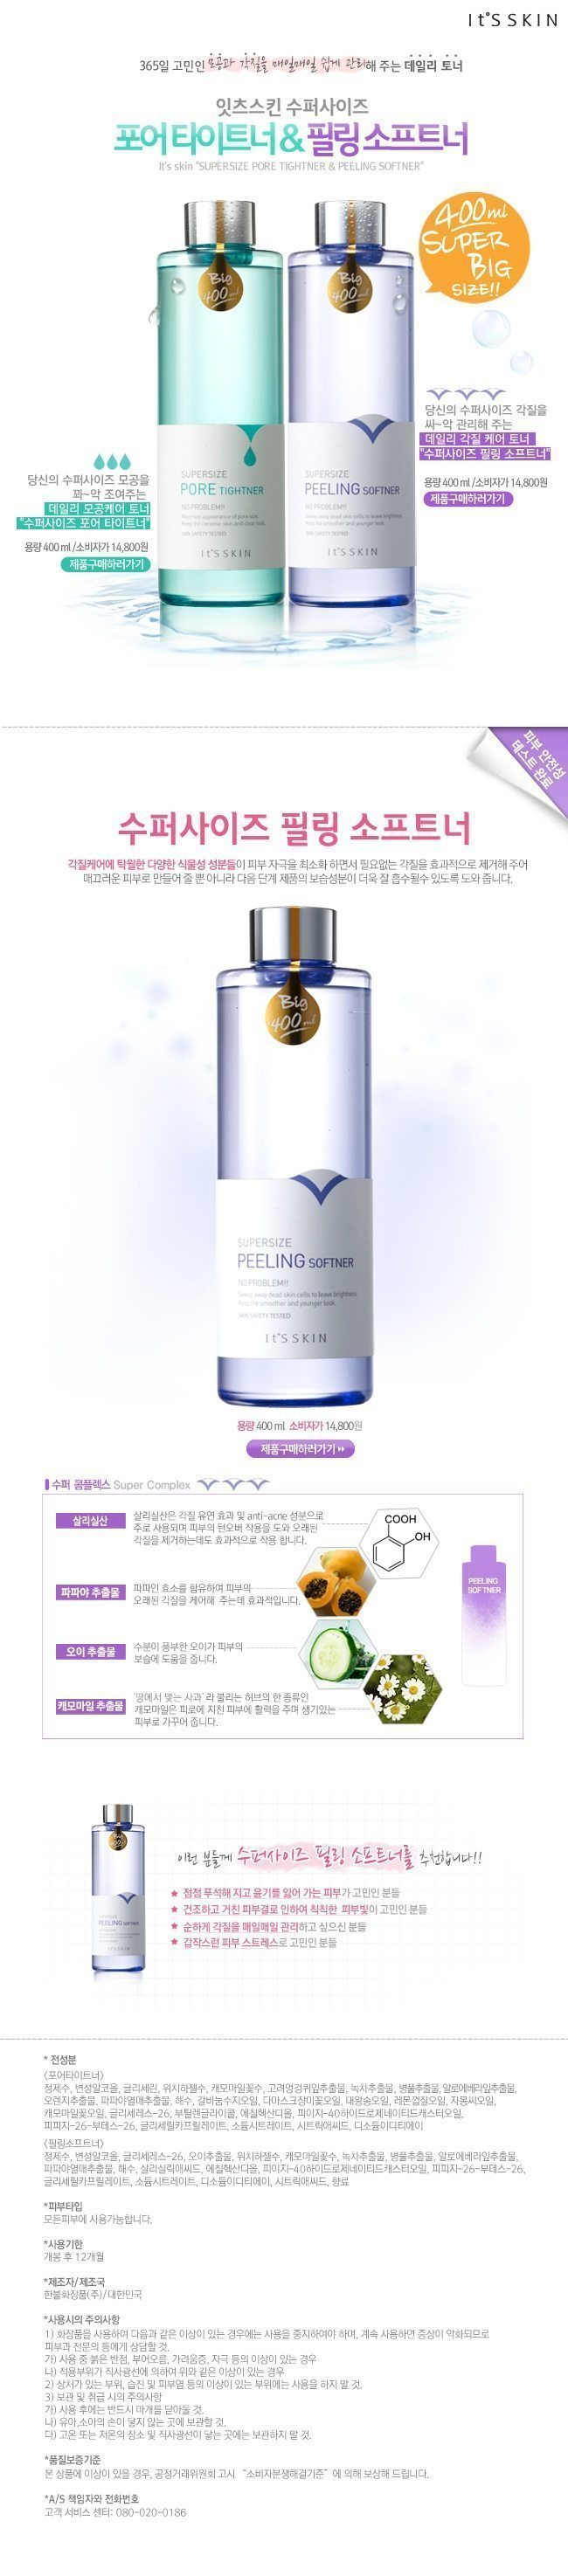 It's Skin Jumbo Peeling Softener korean cosmetic skincare product online shop malaysia vietnam macau1